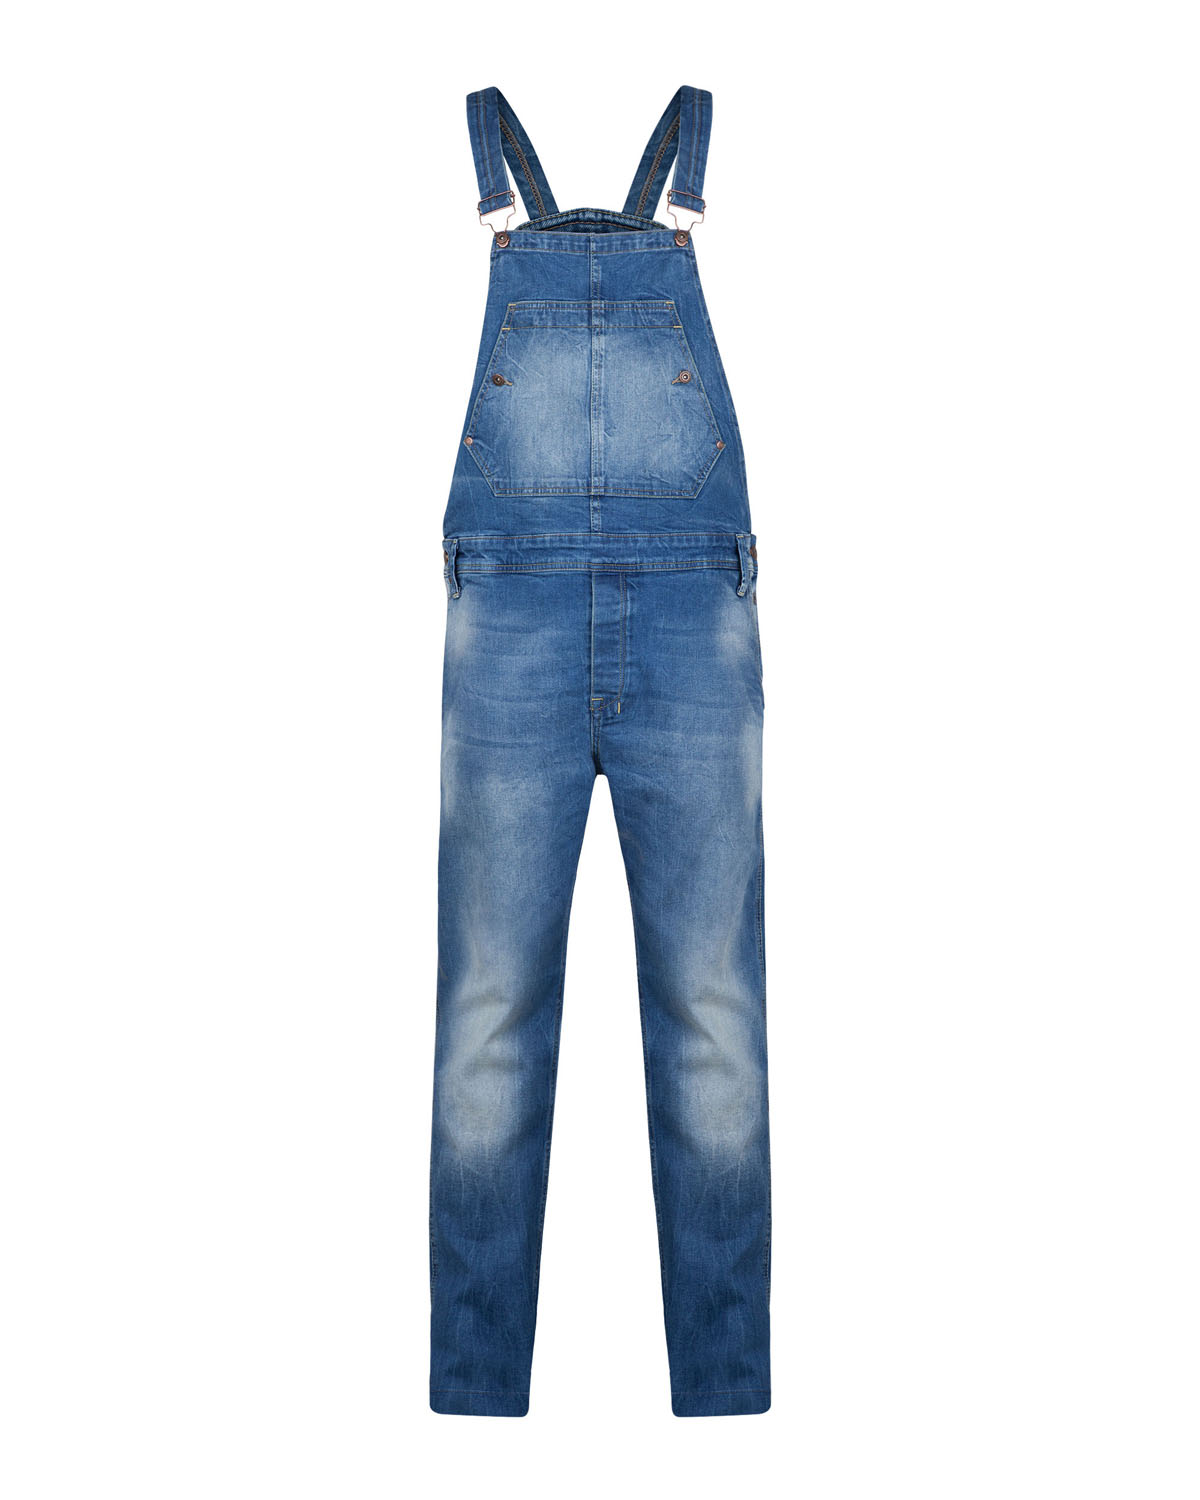 Overall Jeans Men